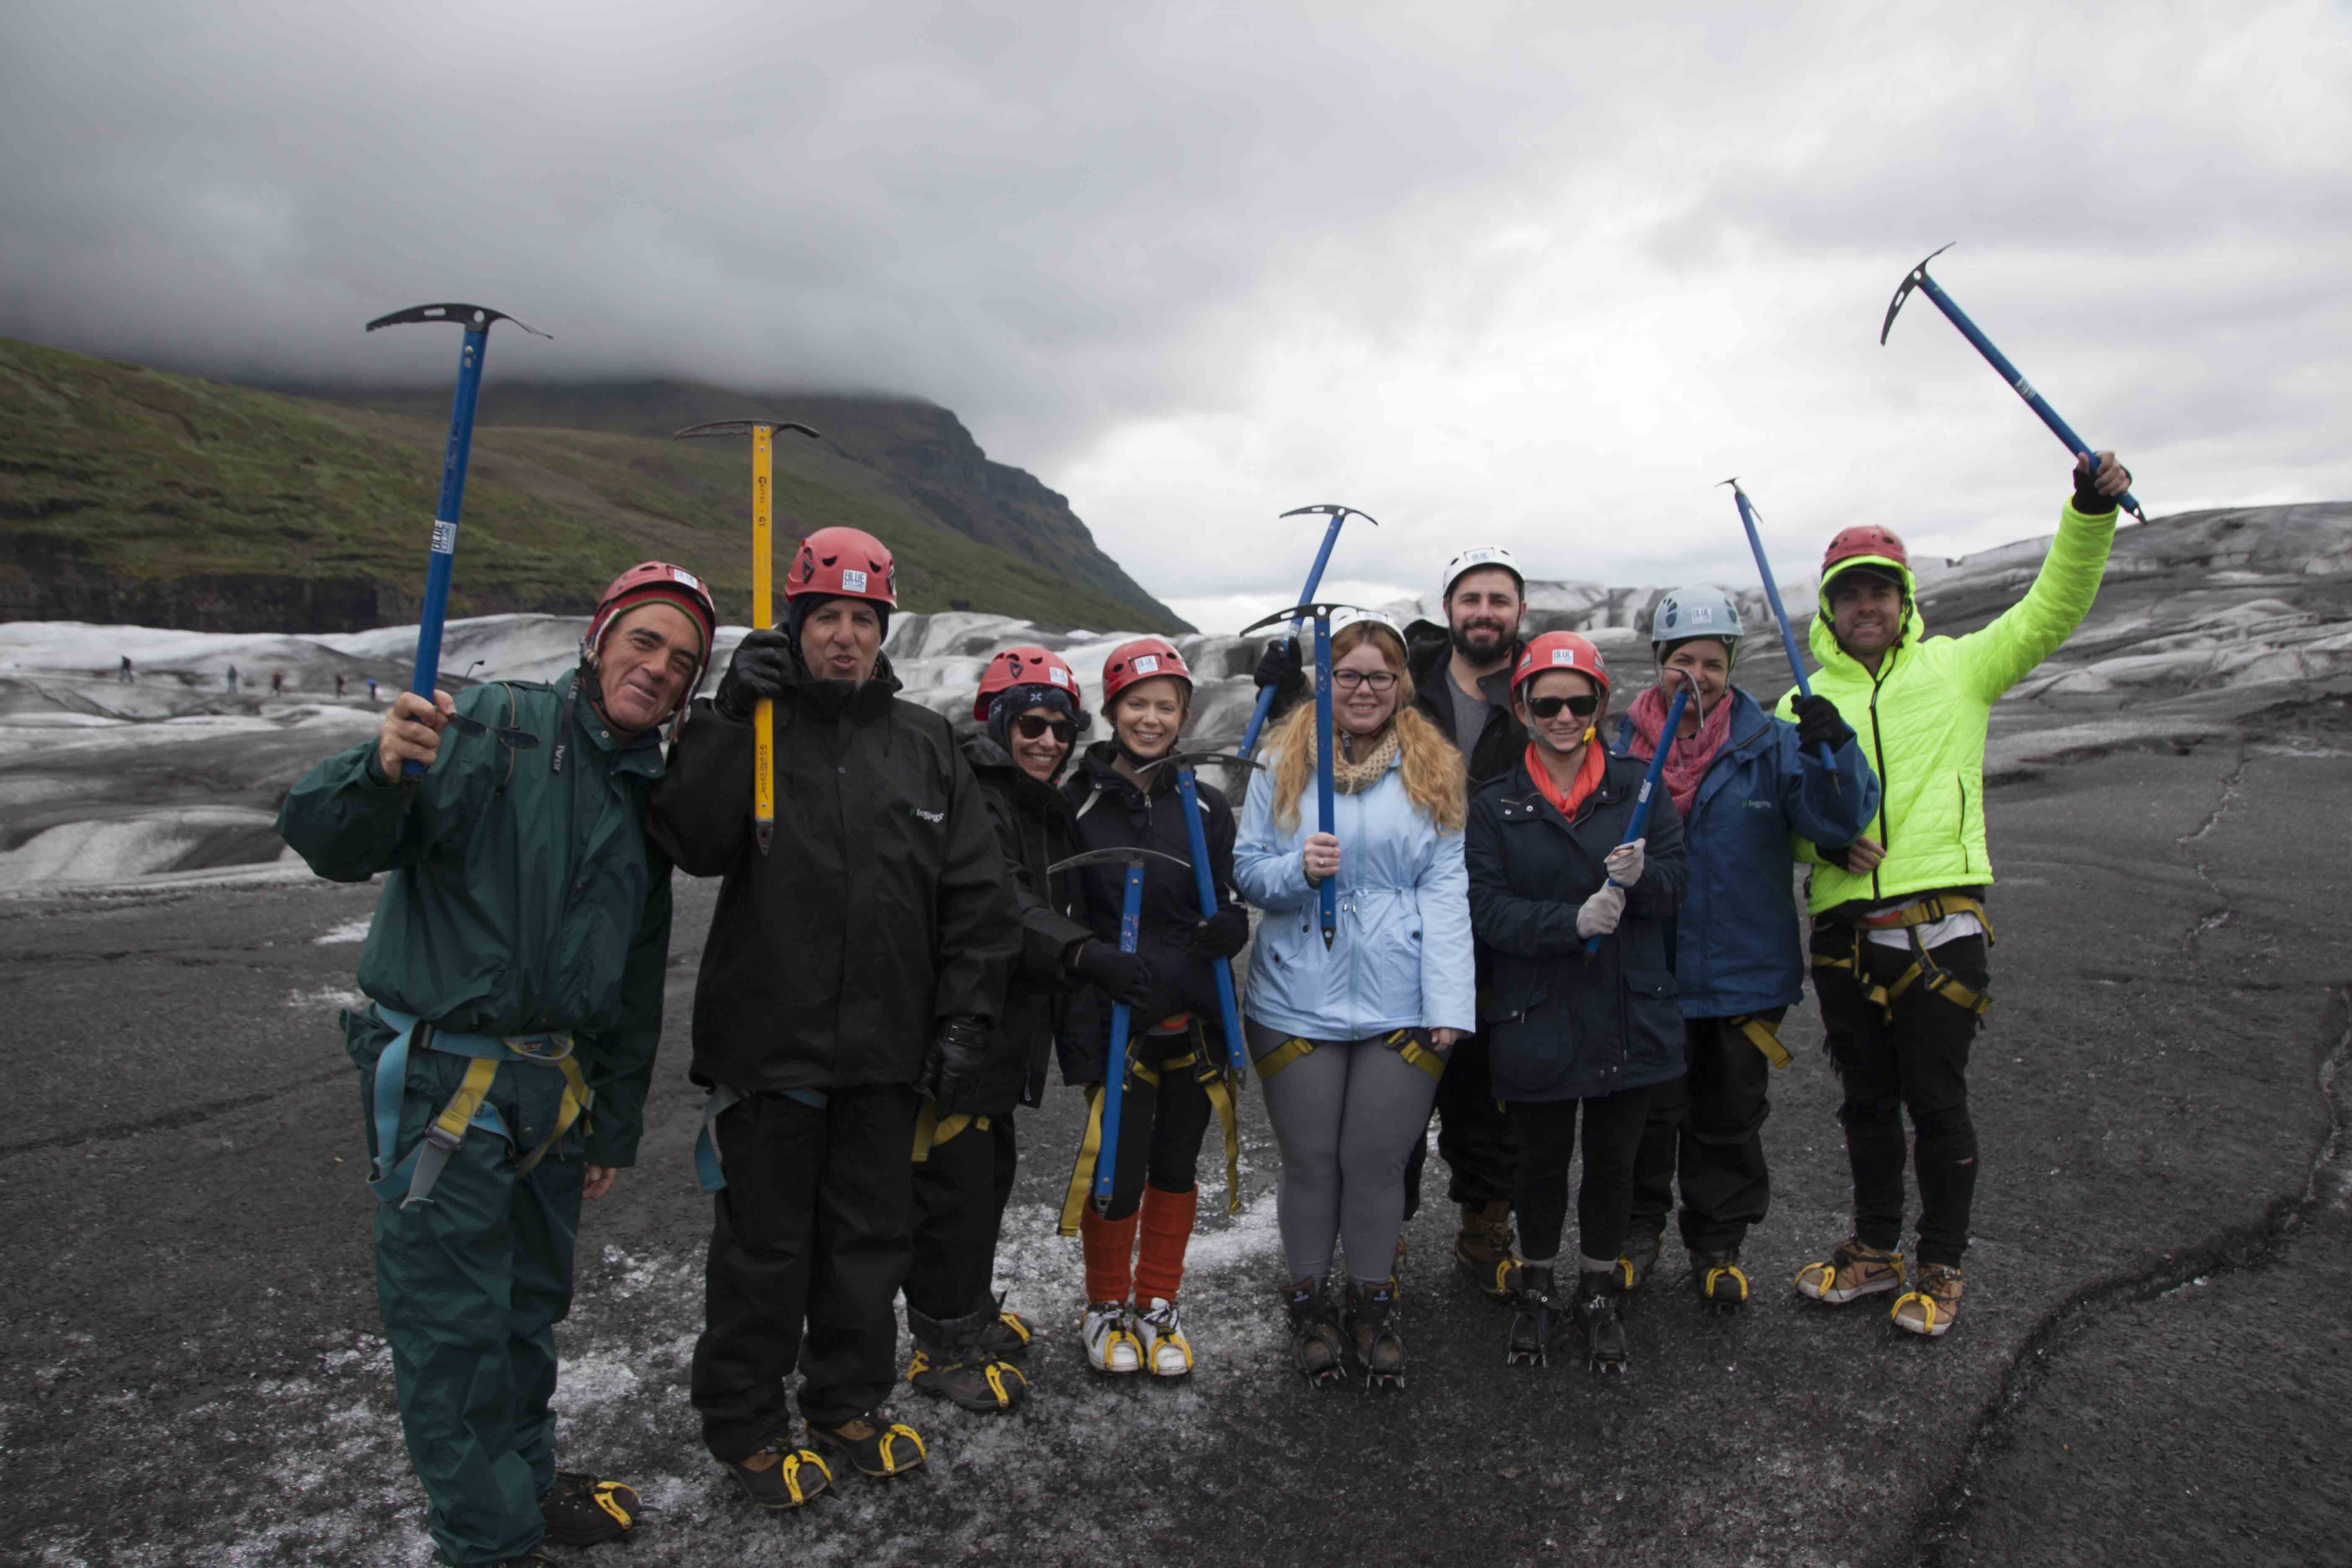 All helmets, ice axes and crampons are provided for you on this glacier hiking tour in the southeast of Iceland.